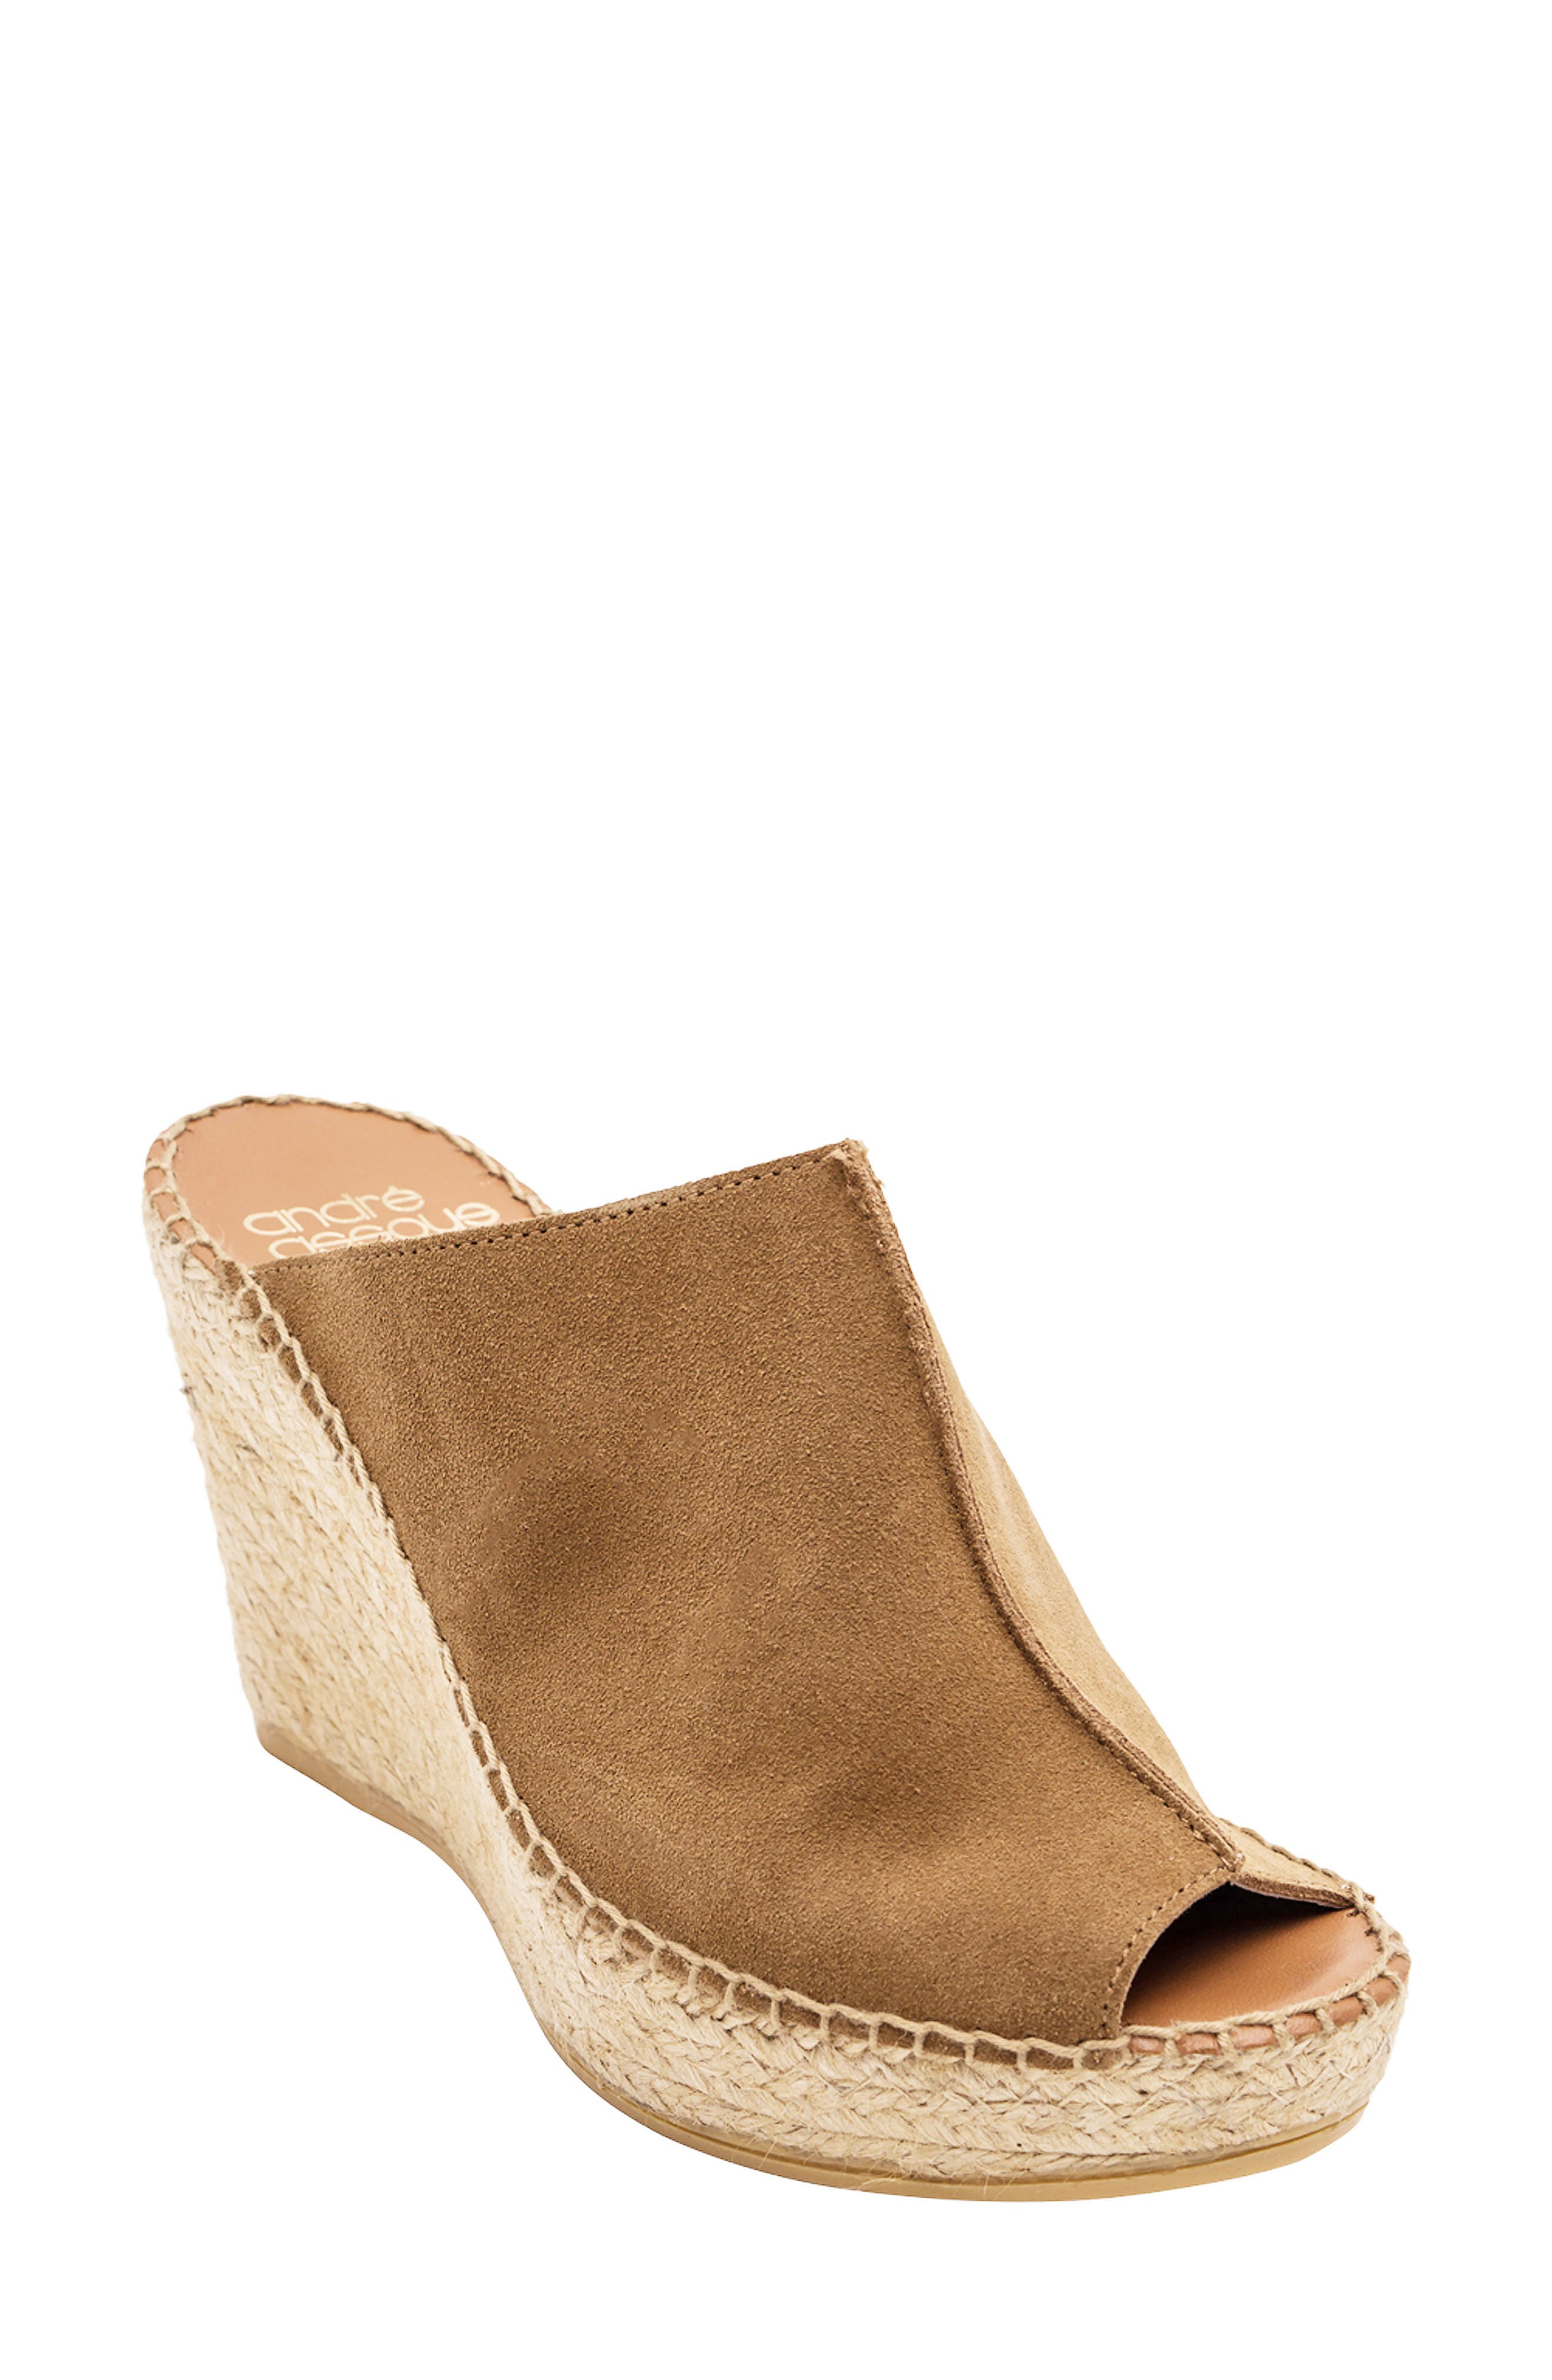 ANDRE ASSOUS Cici Espadrille Wedge in Camel Suede